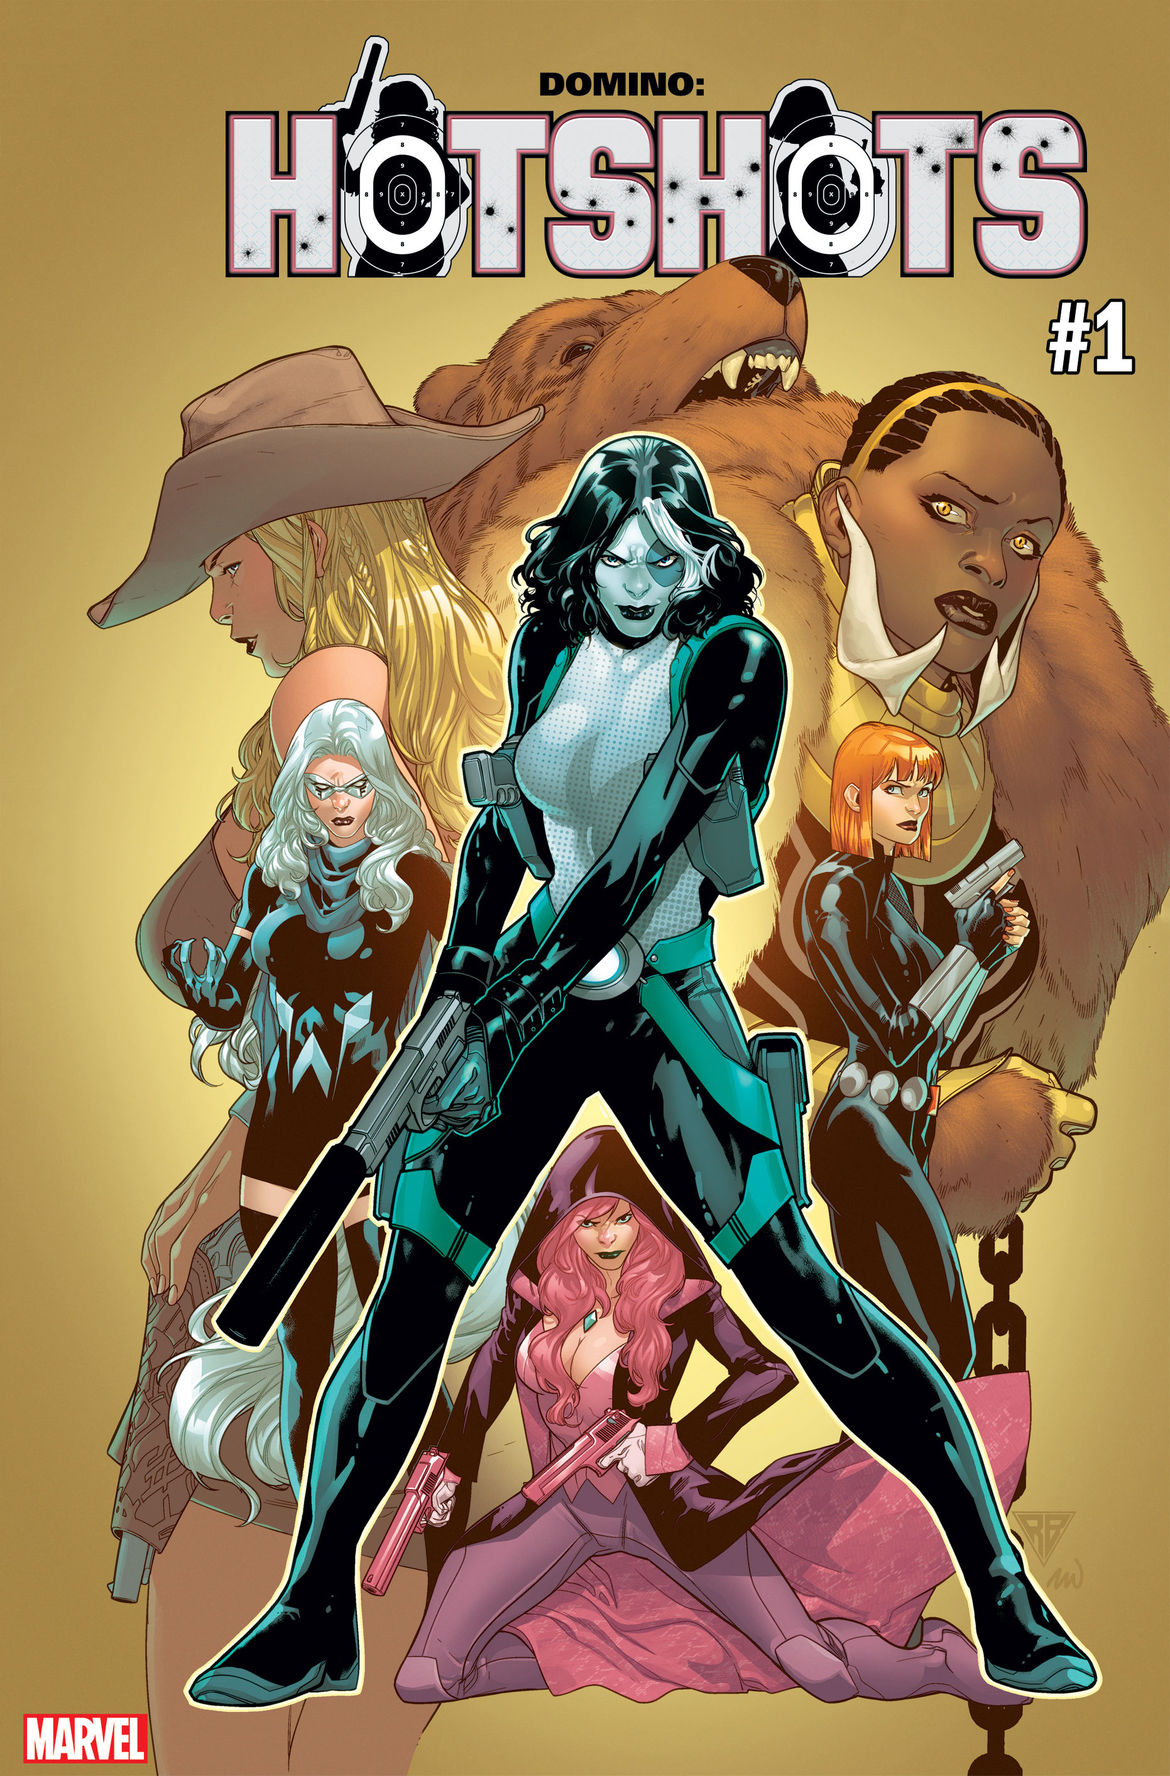 Domino Hotshots #1 Marvel